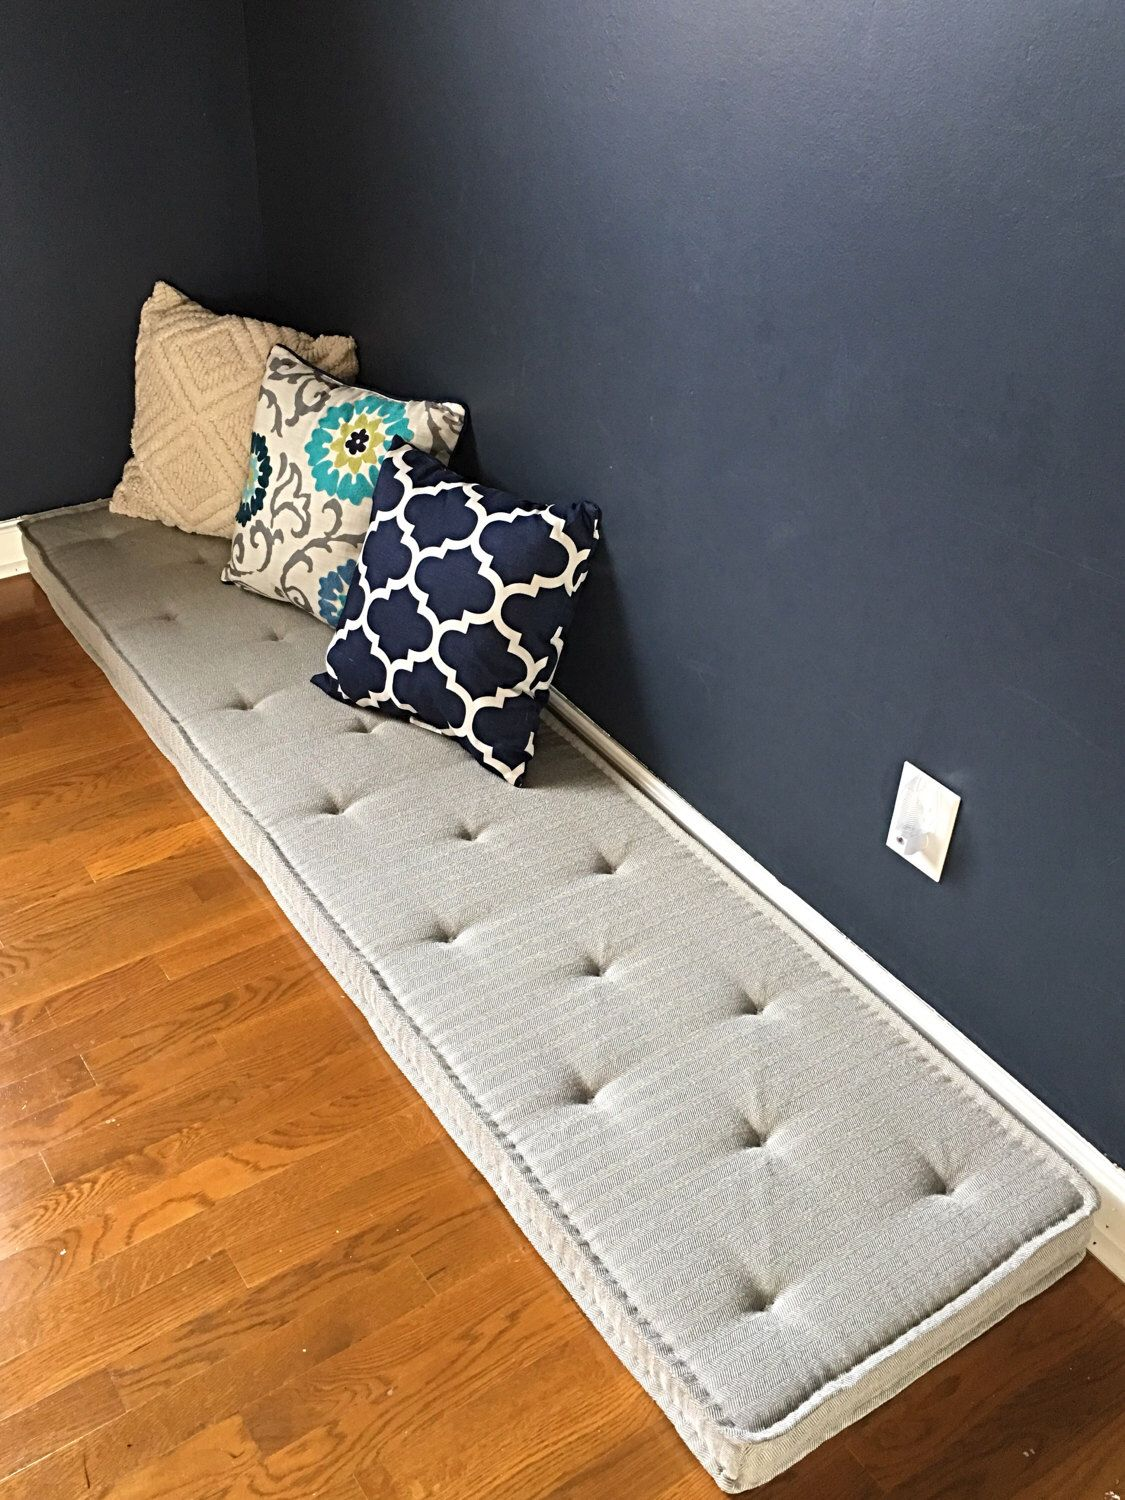 Banquette Bench Cushions on banquette sofas, spray adhesive foam cushions, banquette bench chairs, banquette bench diy, banquette plans, banquette bench kitchen, diy plywood foam cushions, banquette seating,